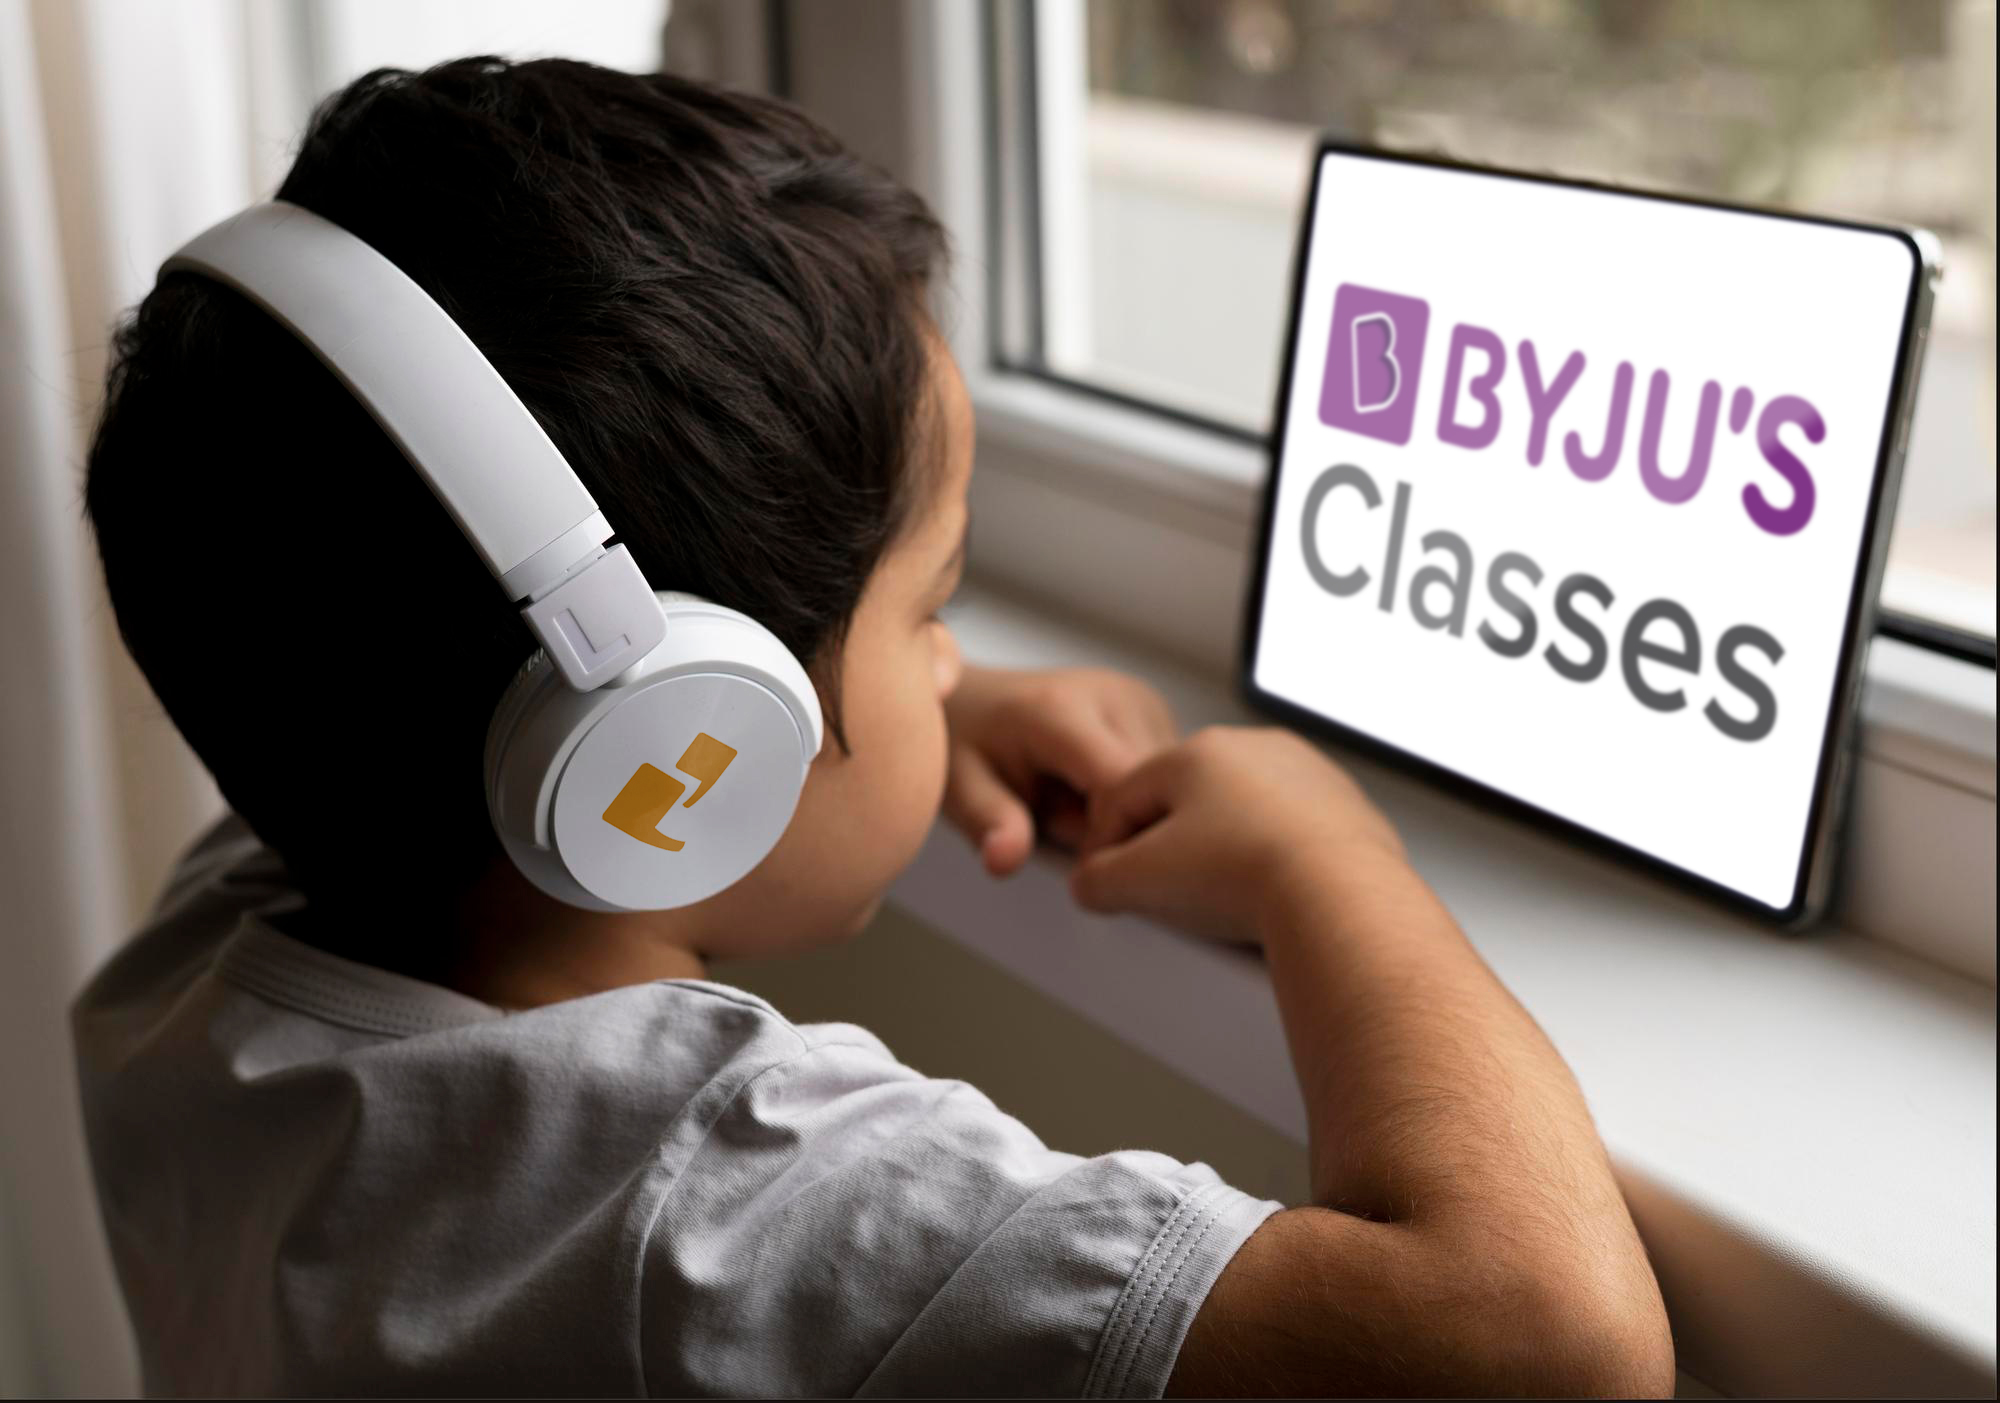 Boy with headphones exploring Byju's classes on his tablet